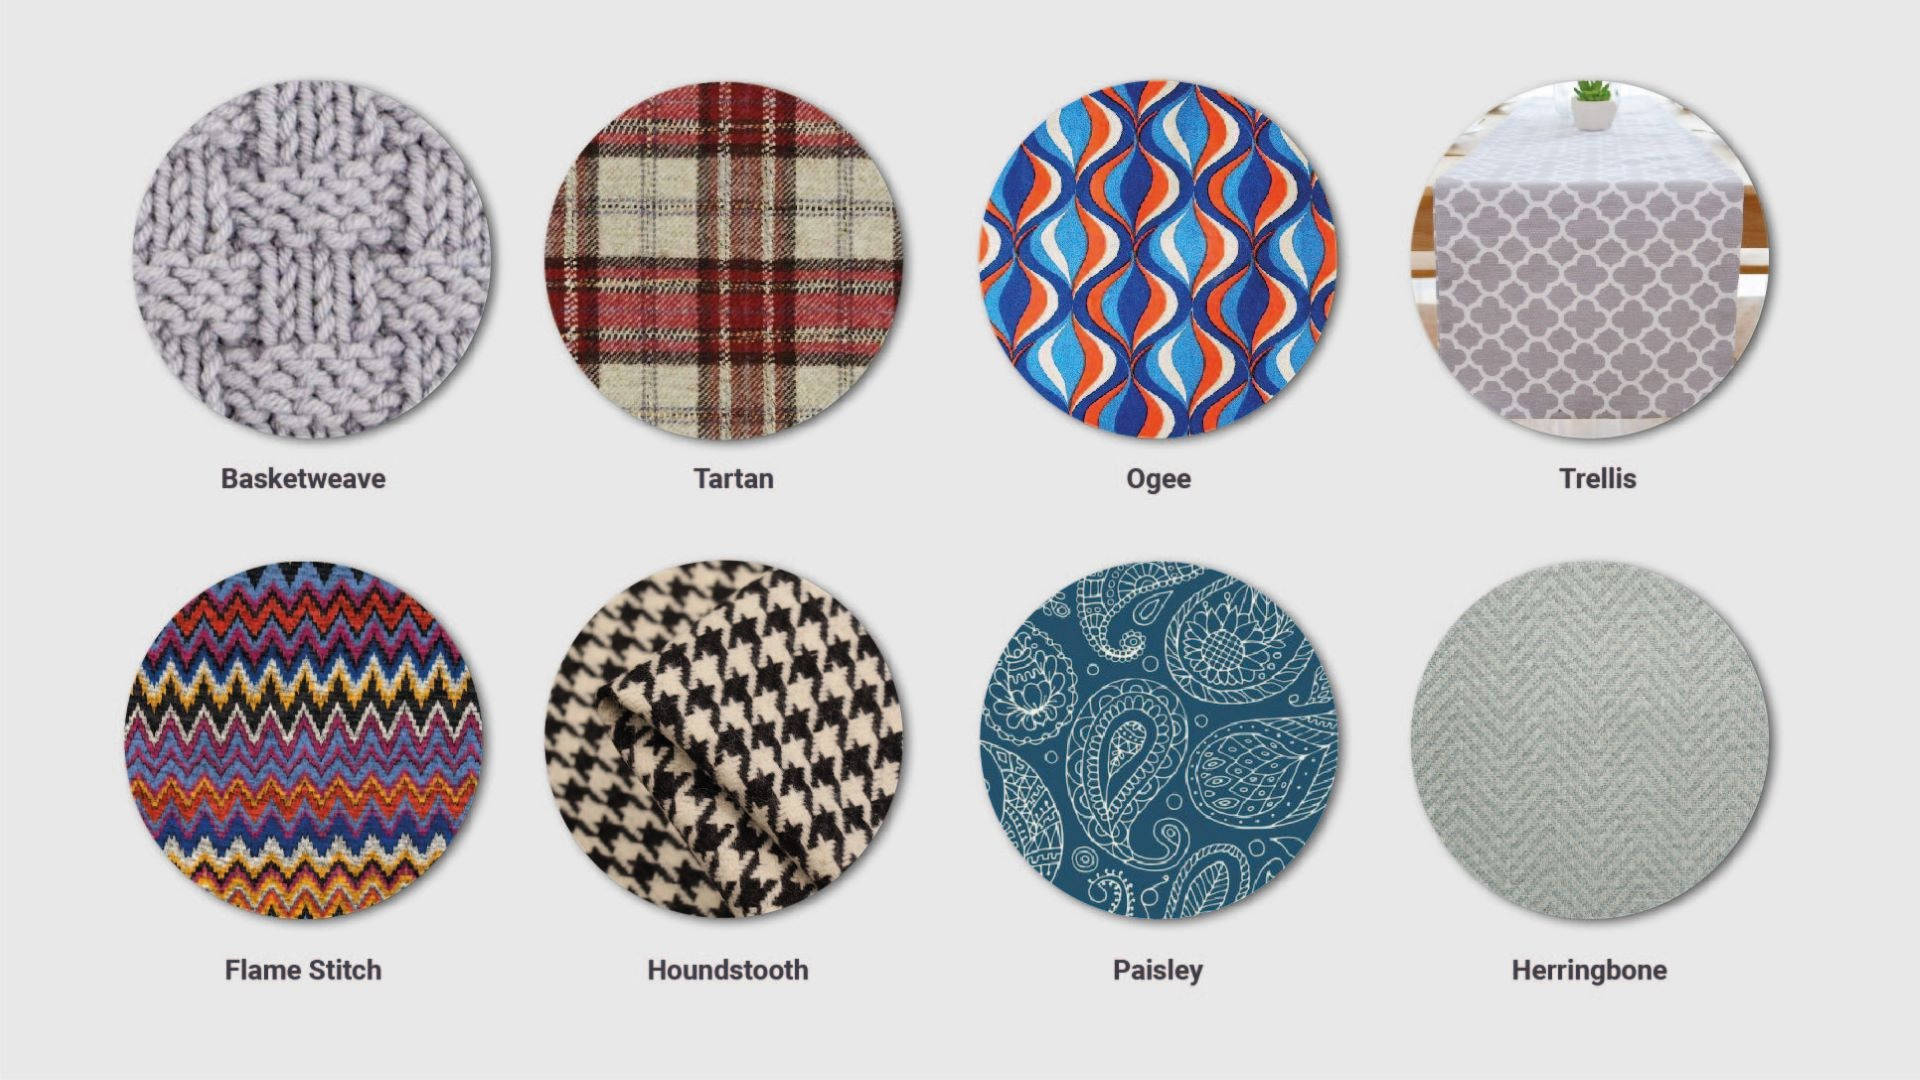 Elaborated patterns used on fabric to create textures in Retro style